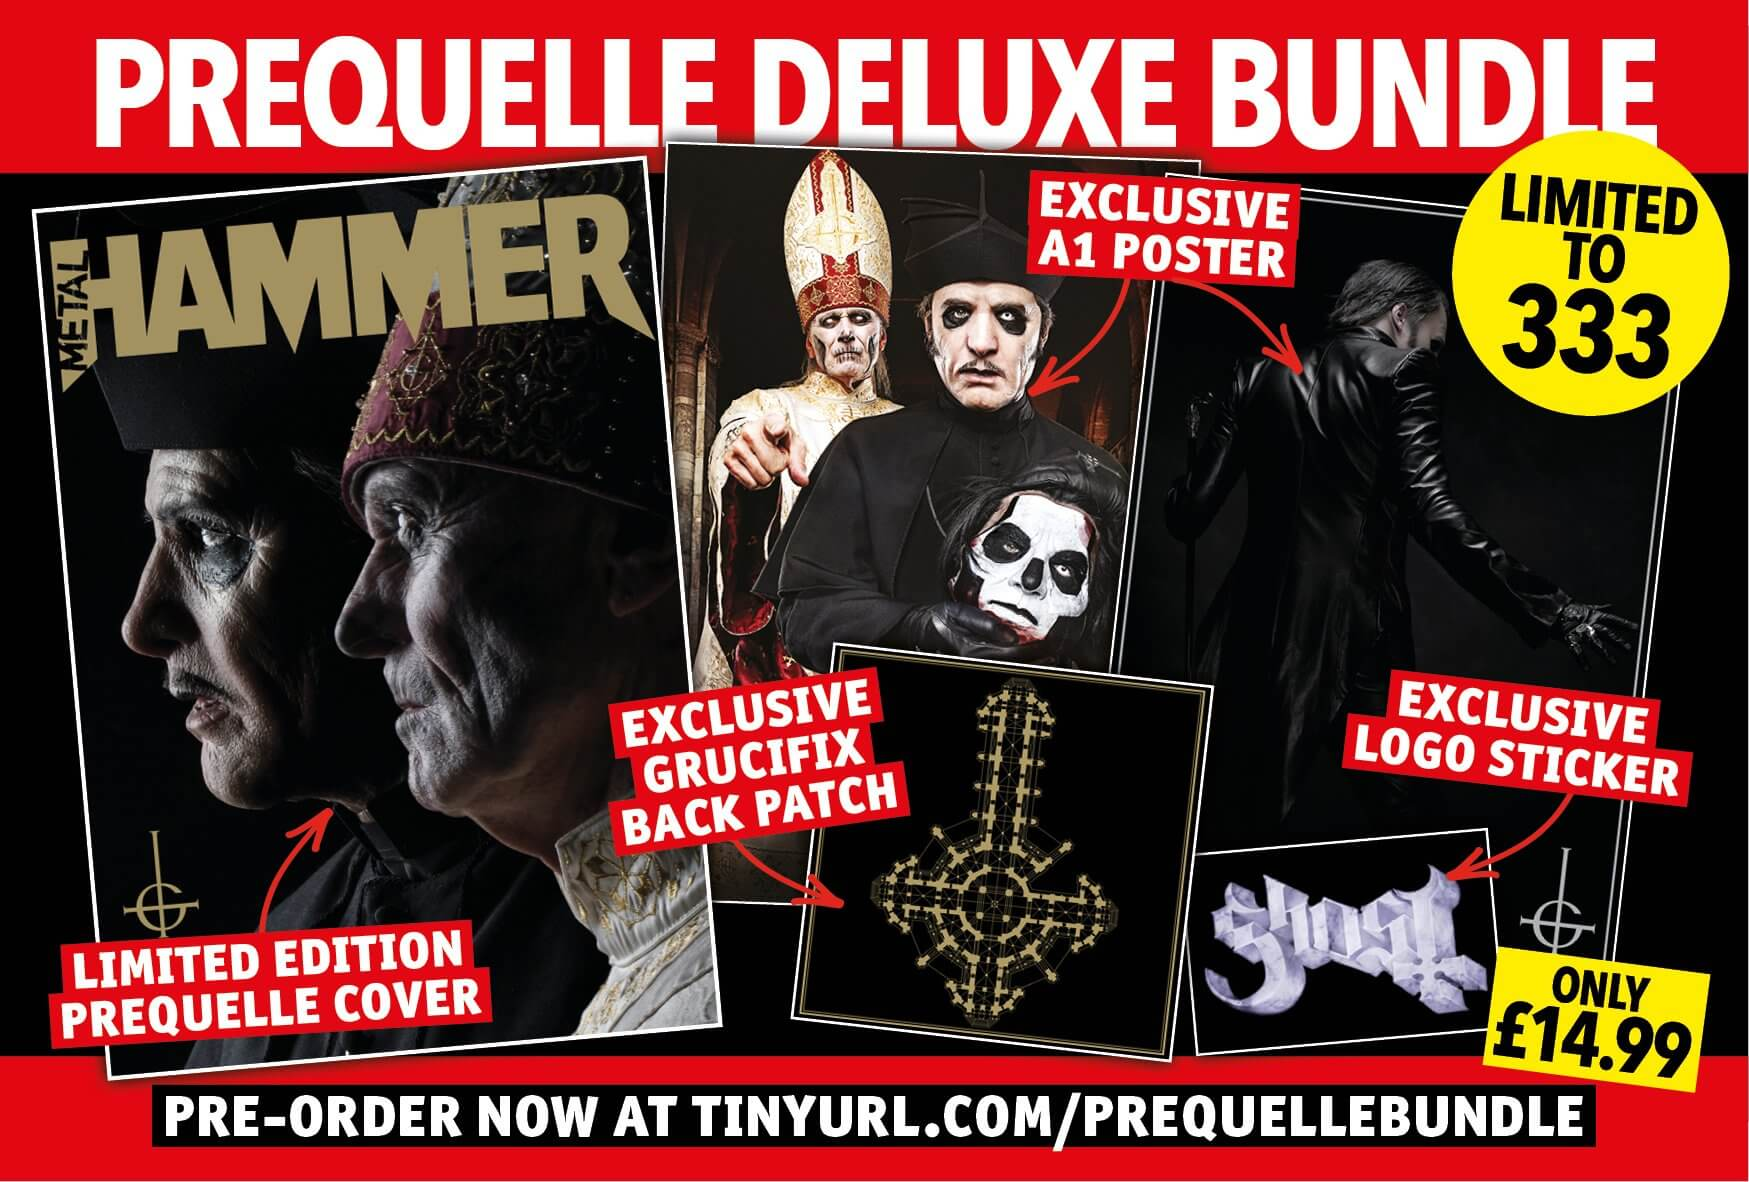 Metal Hammer Teams Up With Ghost To Offer Different Magazine Cover